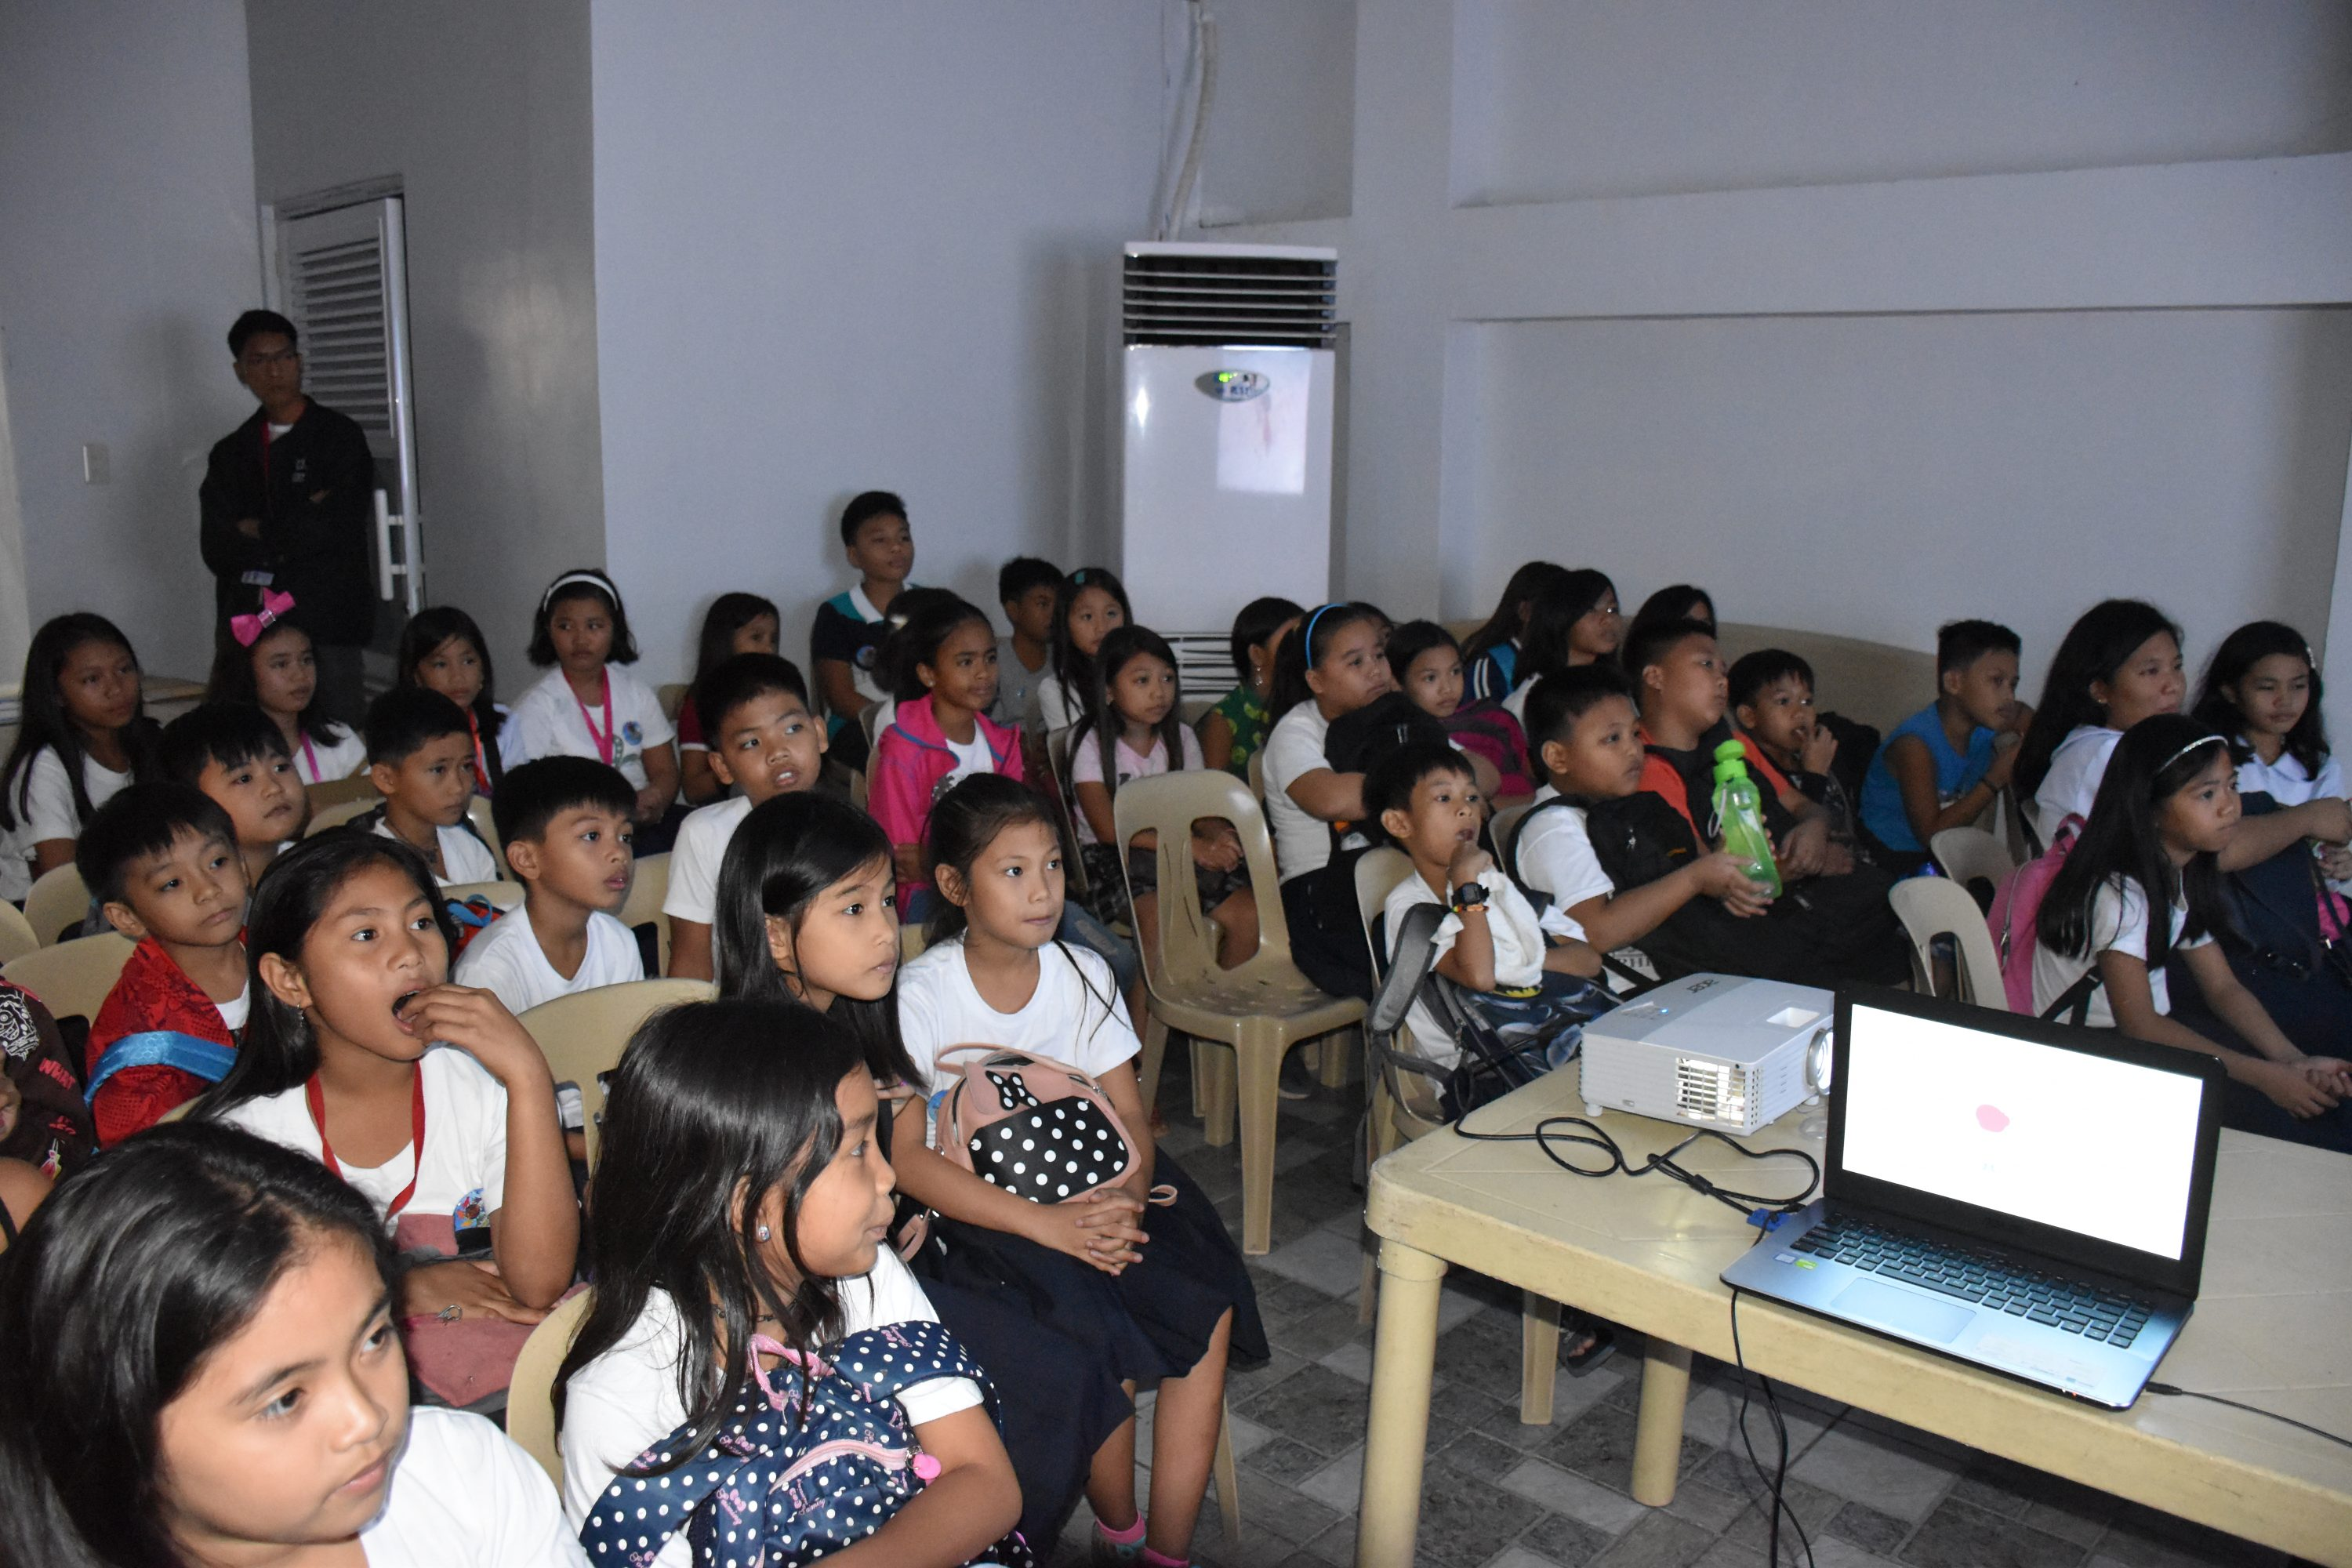 science film showing